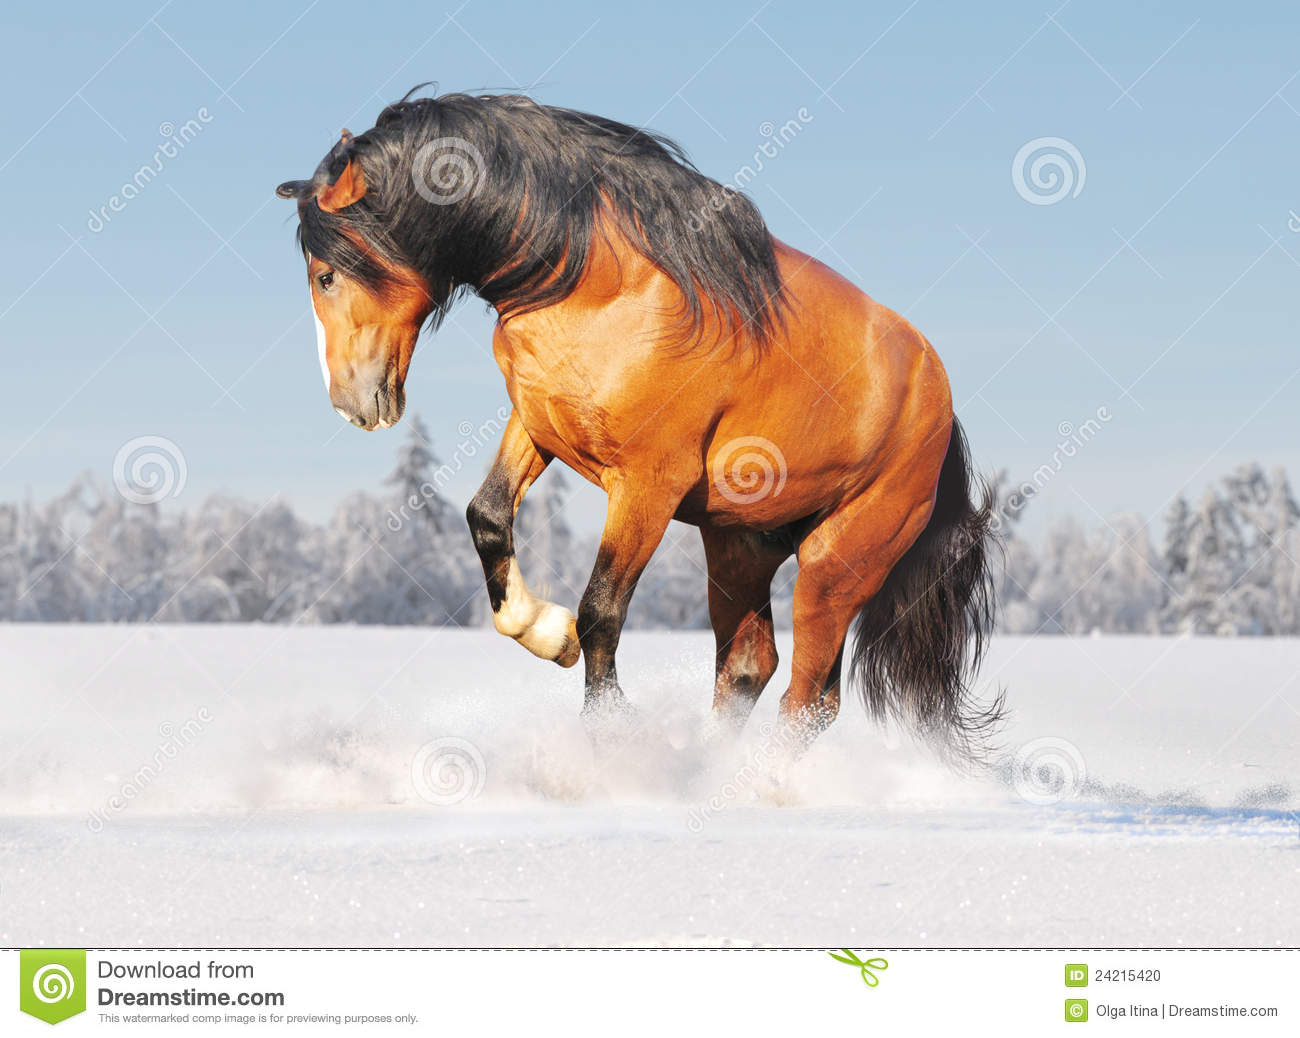 Draft Horse In Snow Stock Photo Image Of Chestnut Object 24215420